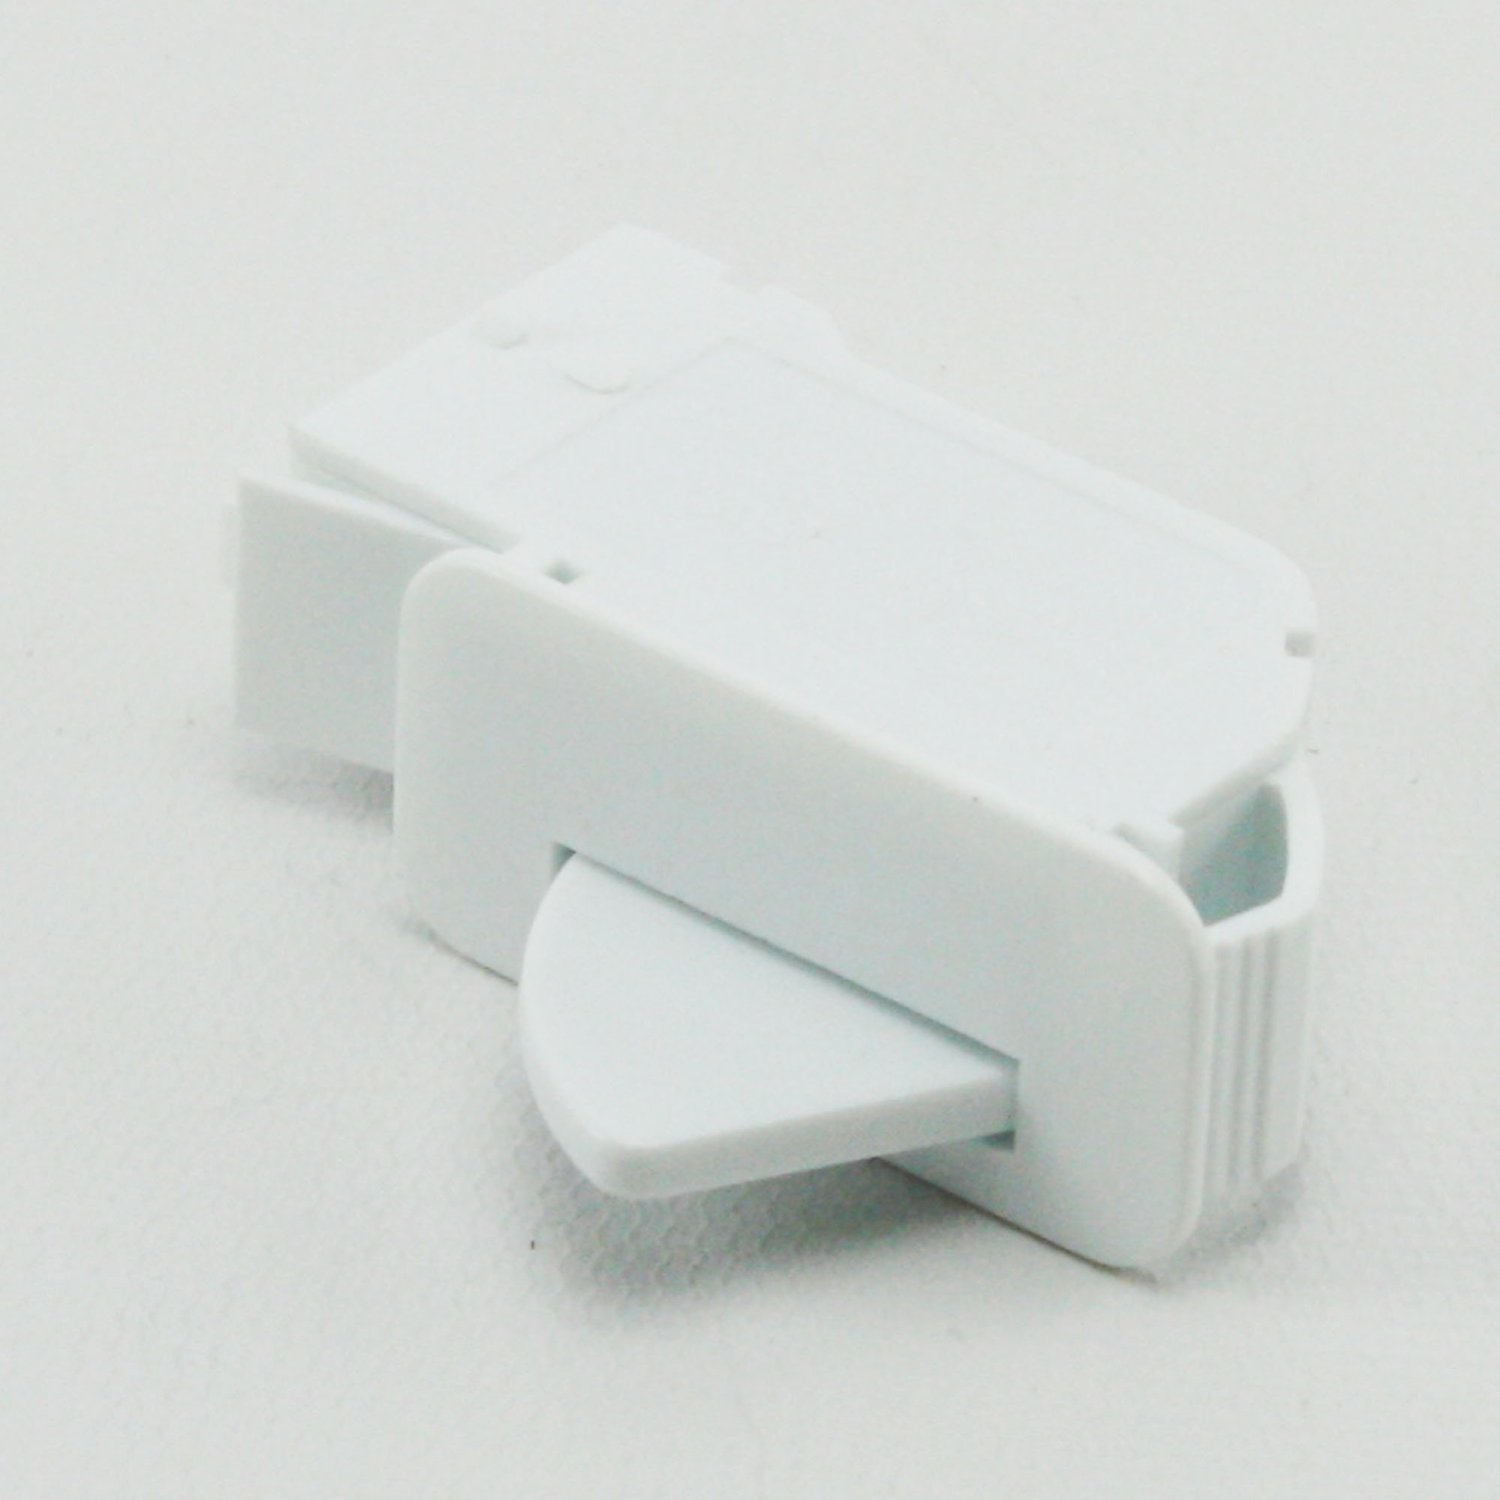 Compatible Light Switch for Kenmore/Sears 79571072, Kenmore/Sears 79576203901, LG LDC22720ST Refrigerator